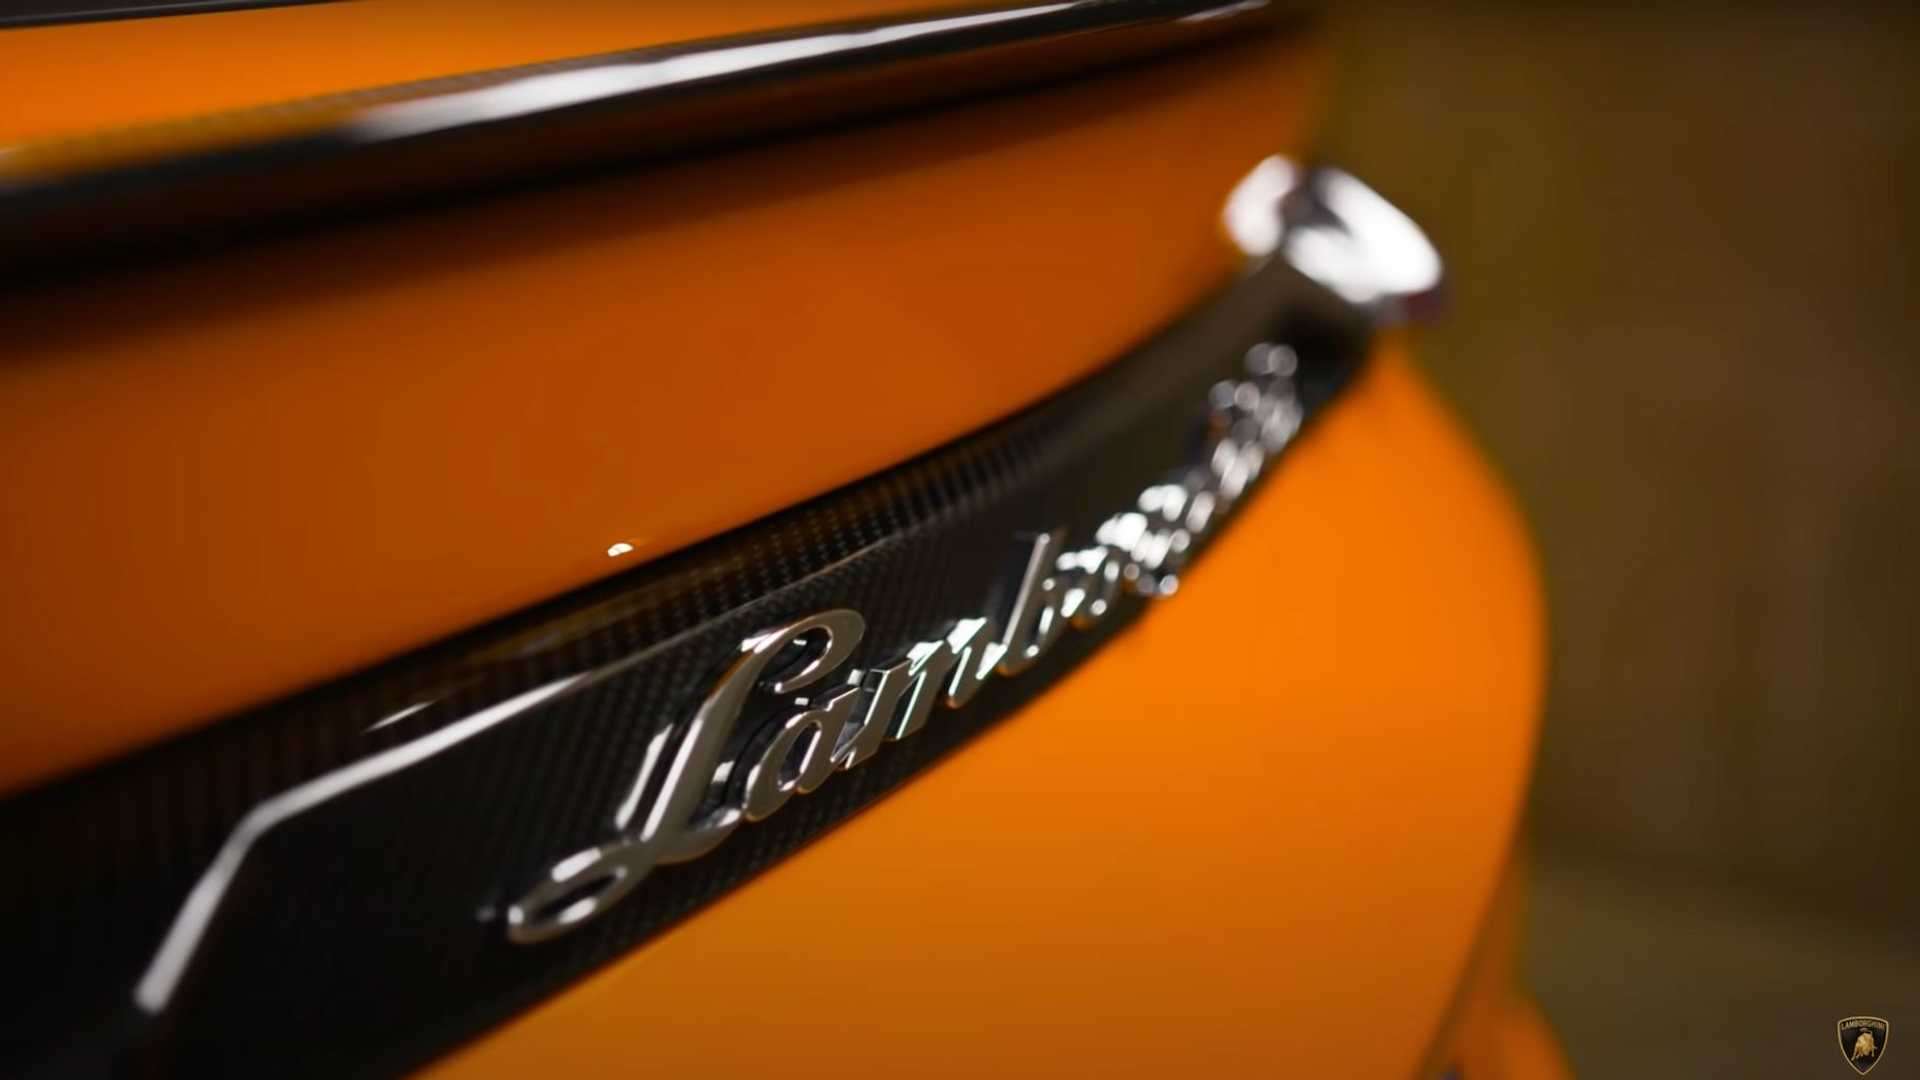 VW Group Allegedly Receives Offer To Sell Lamborghini For $9.2 Billion